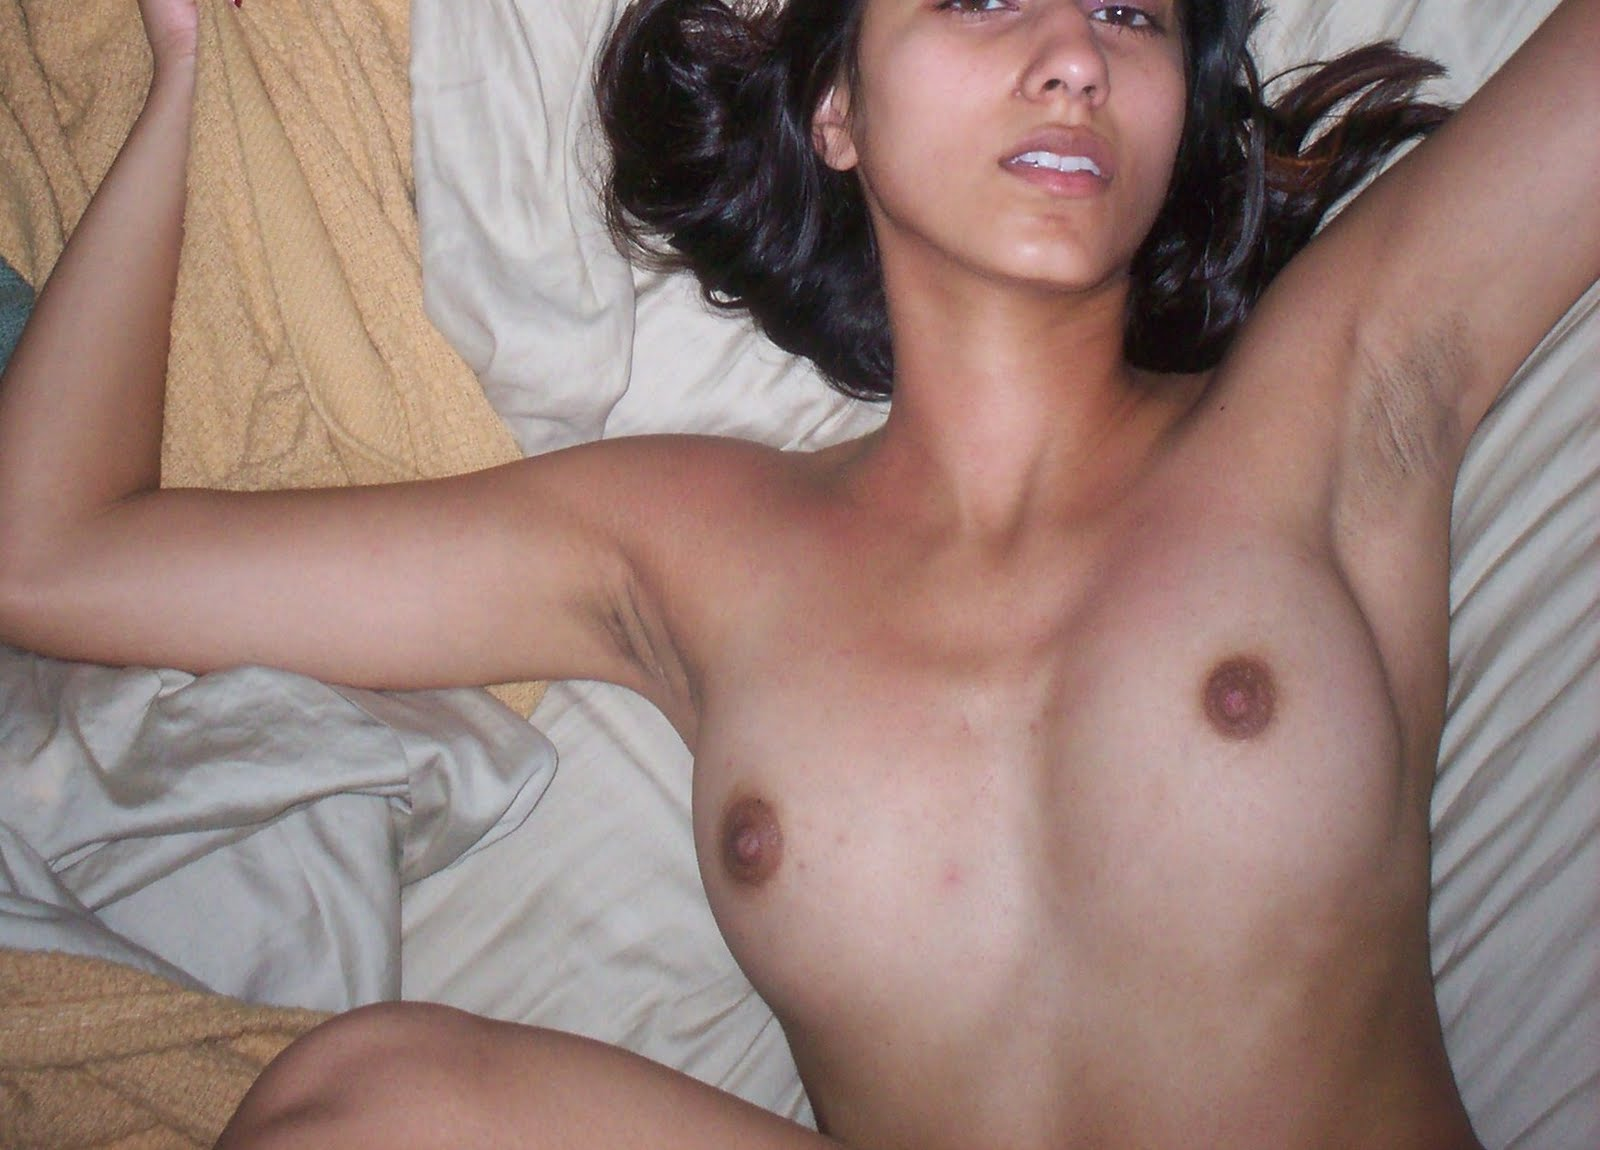 naughty girl sex india